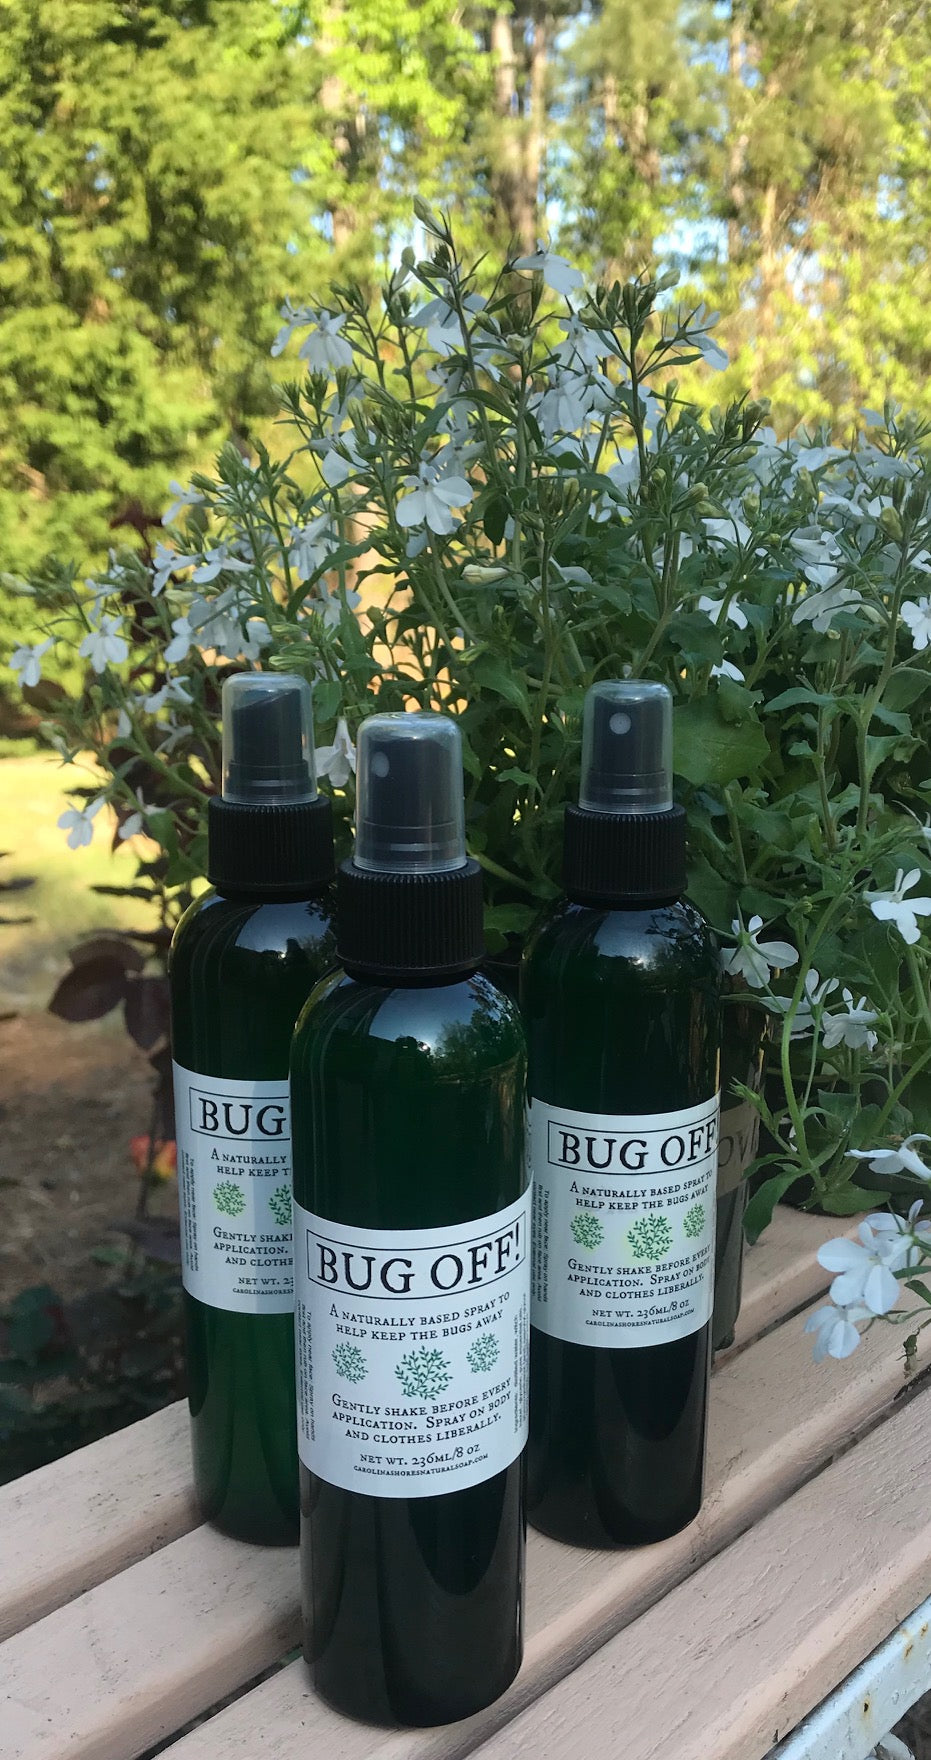 BUG-OFF Natural Outdoor Spray